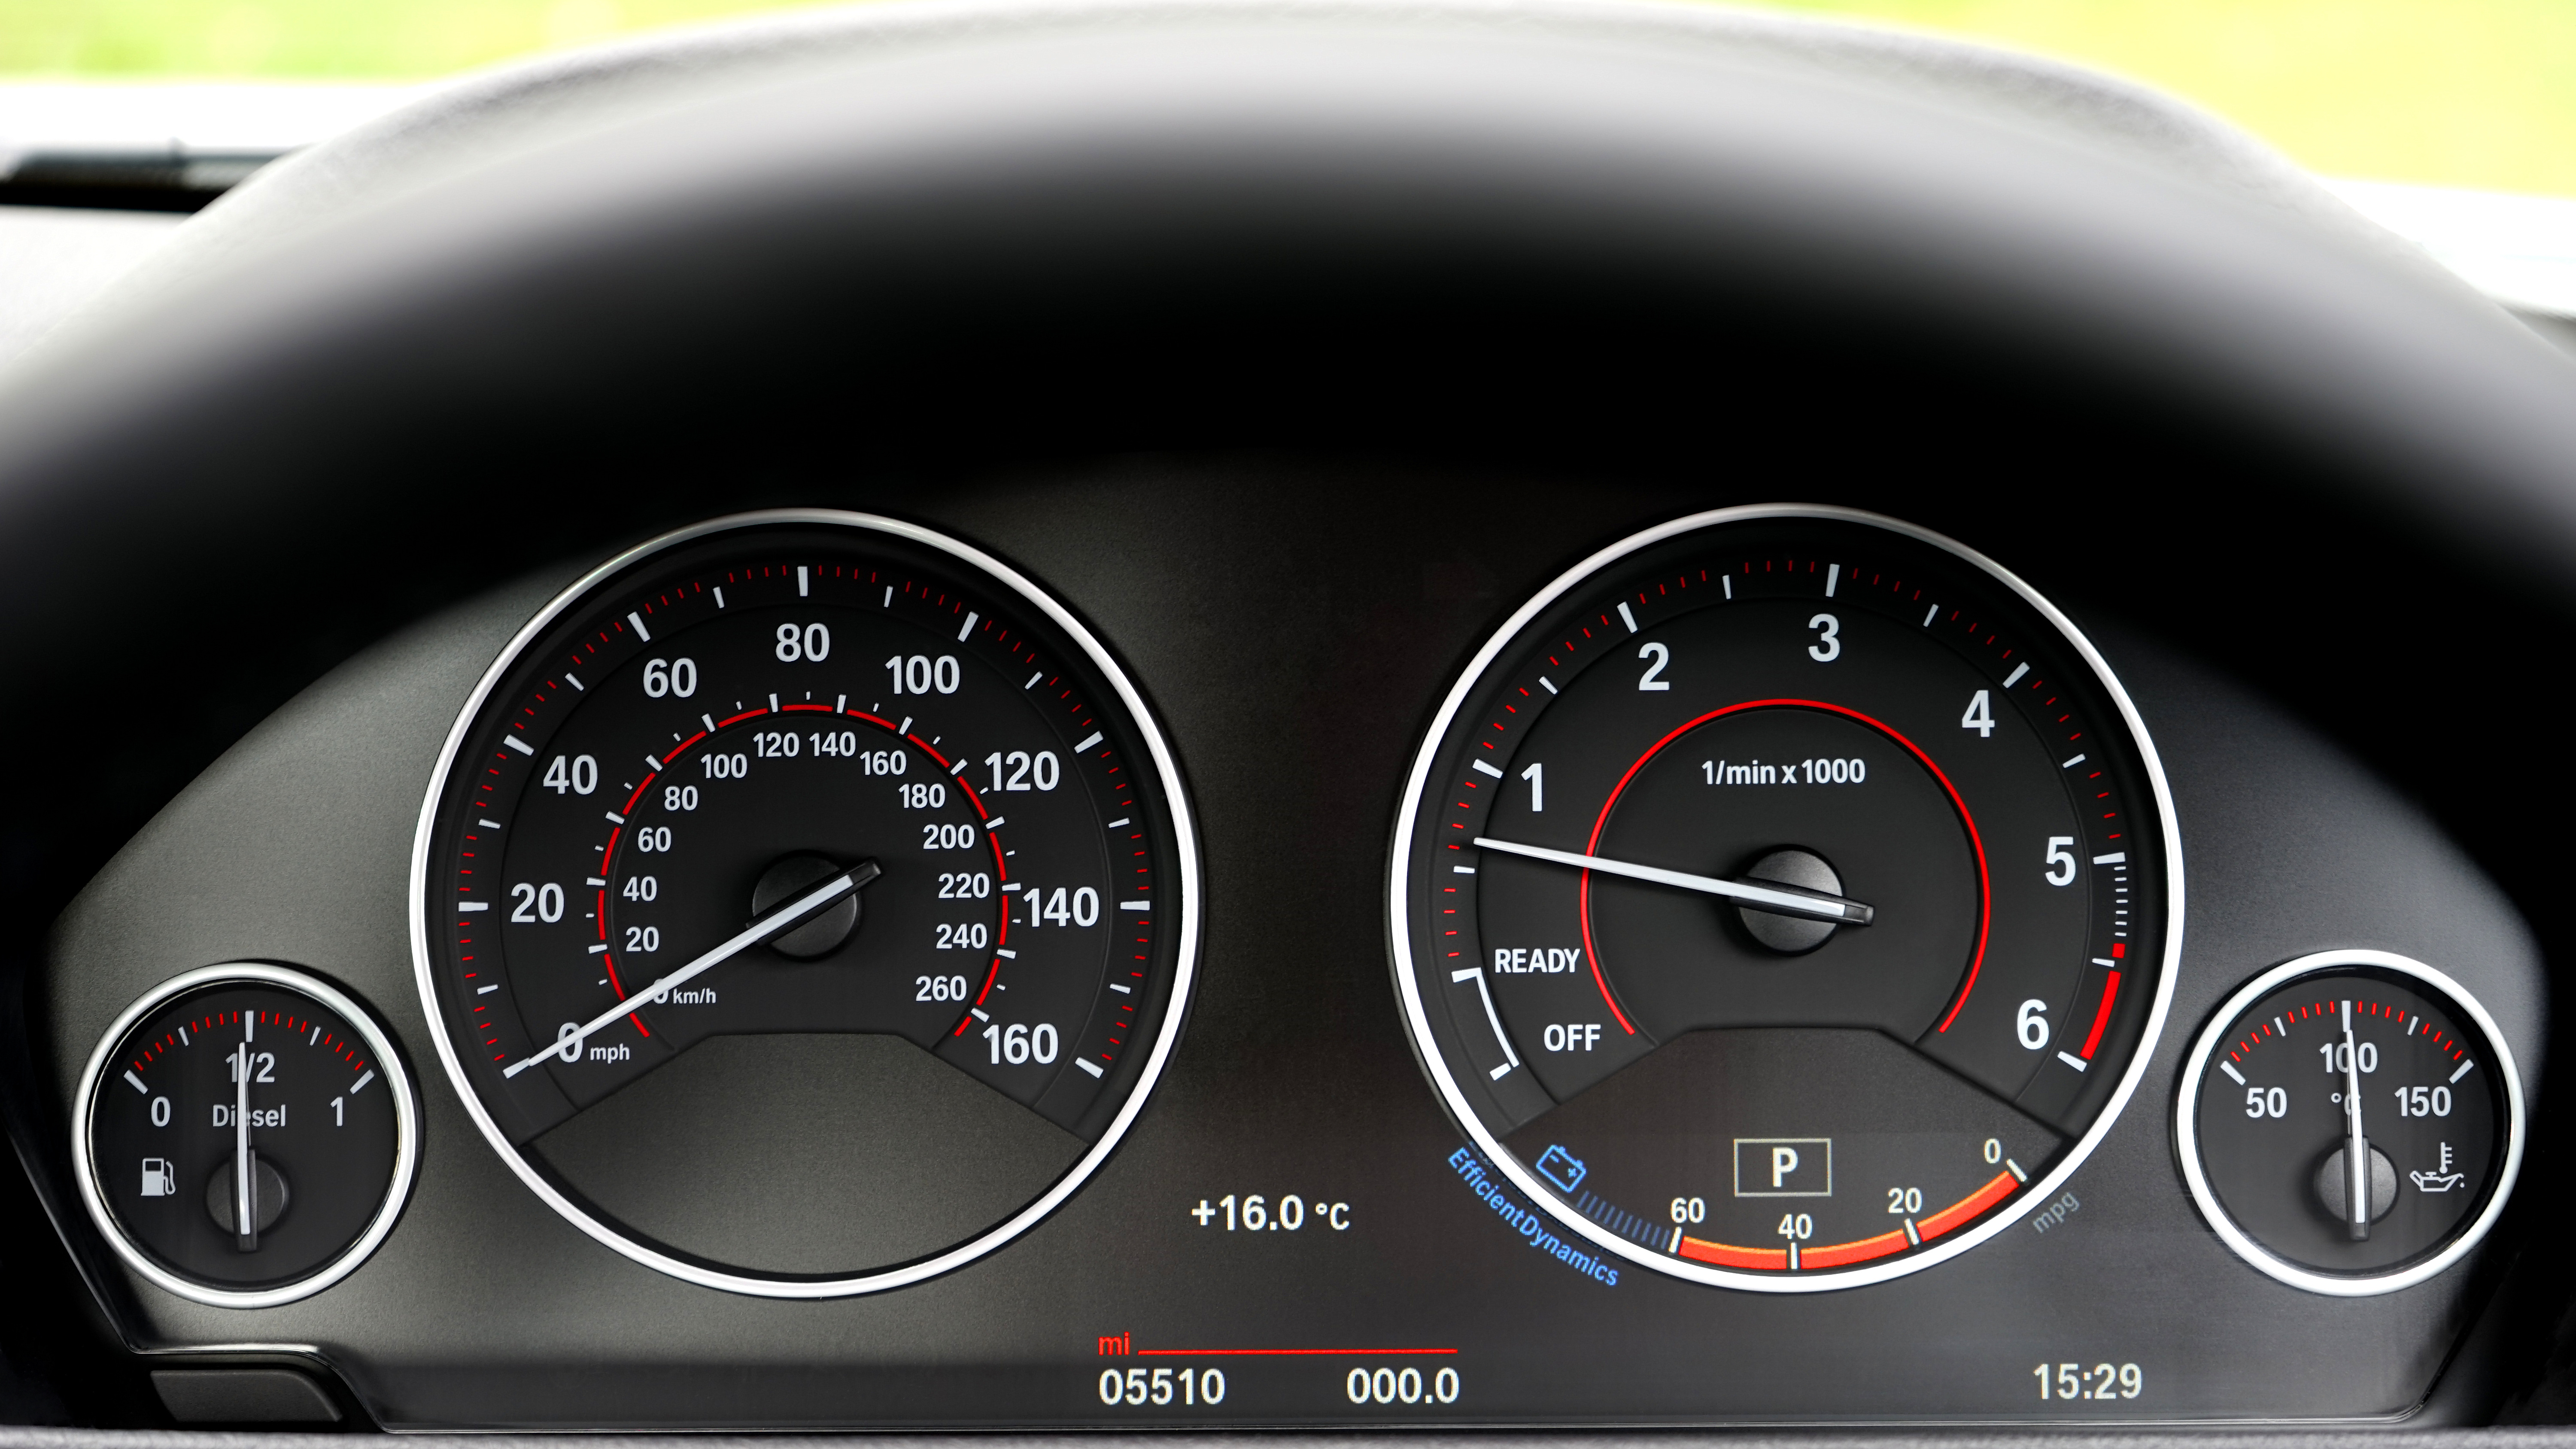 Car Warning Signs You Should Not Ignore Vehicle Dashboard Symbols - Car image sign of dashboardmeaning of the warning lights on your dashboard car news auto lah